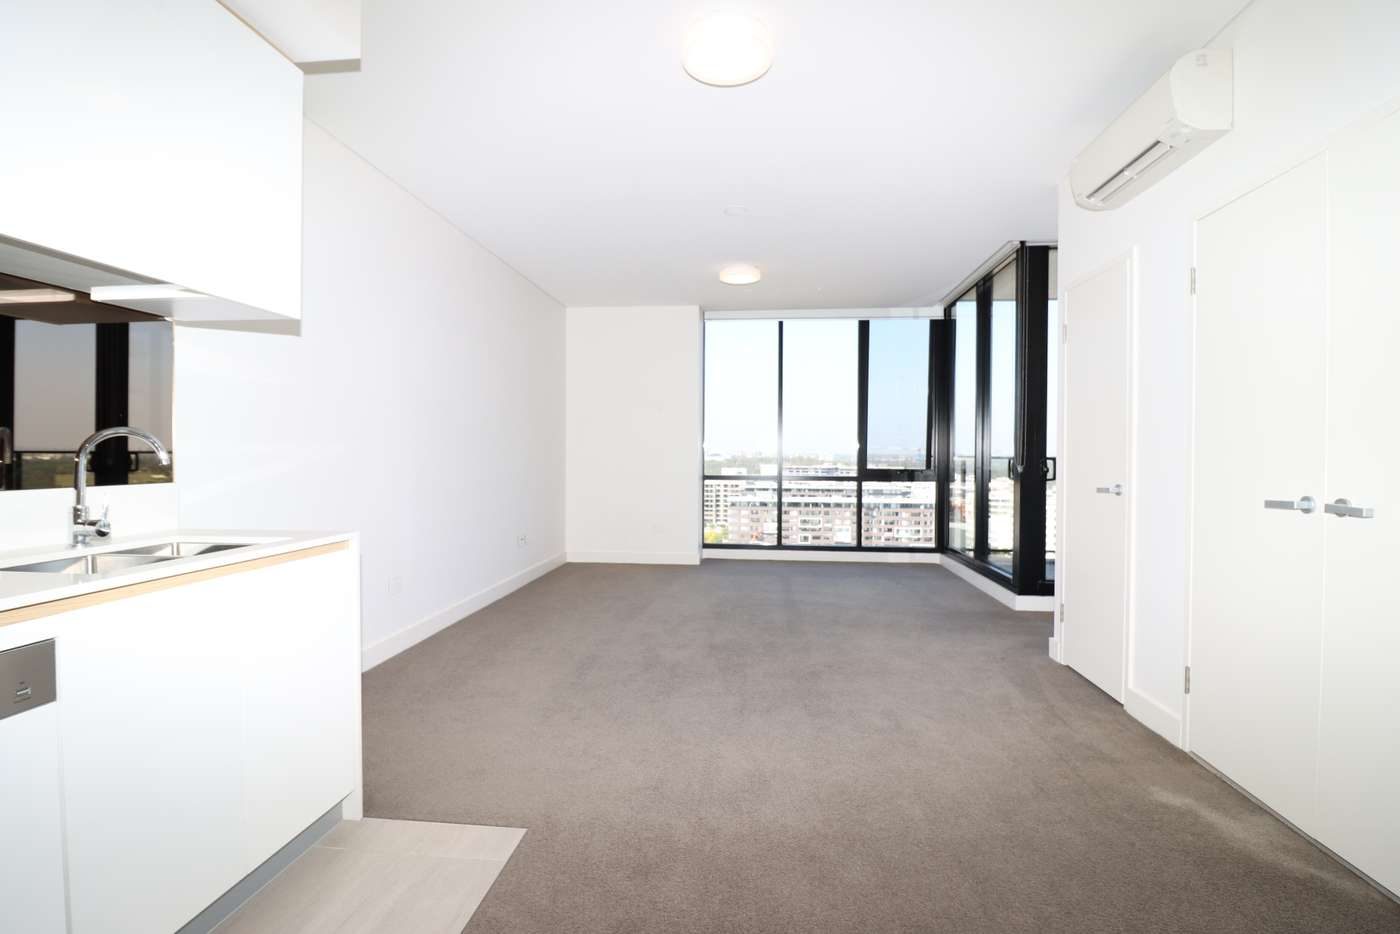 Sixth view of Homely apartment listing, 1511/46 Savona Dr, Wentworth Point NSW 2127